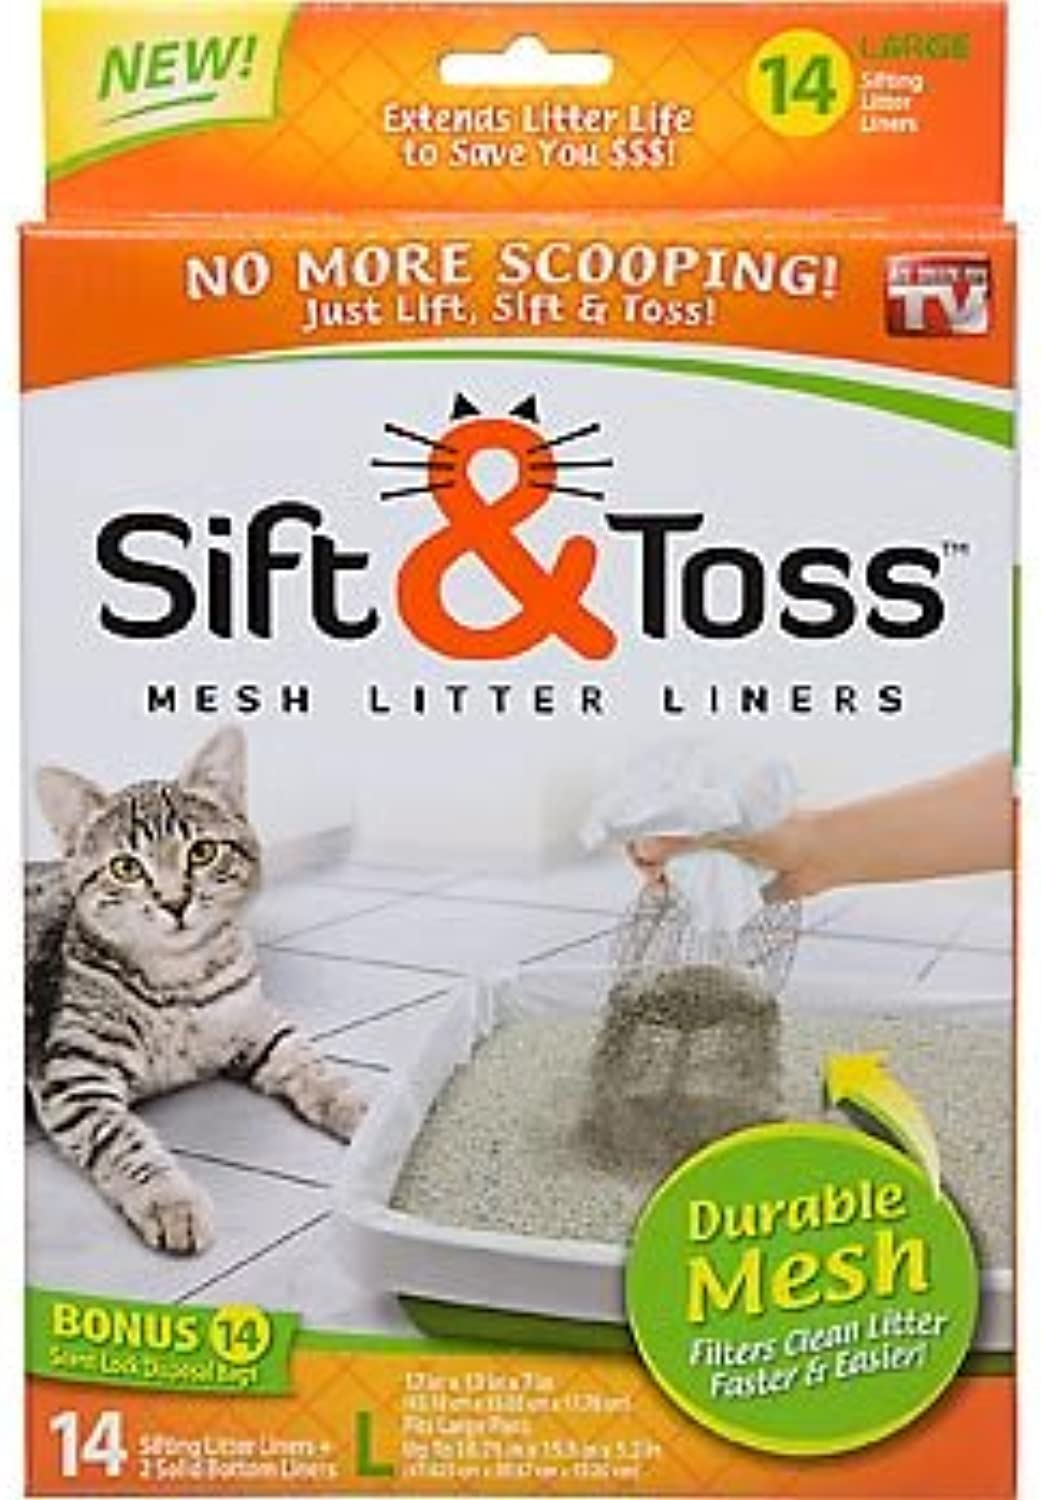 As Seen On TV Sift & Toss Mesh Litter Liners(SizeLarge)